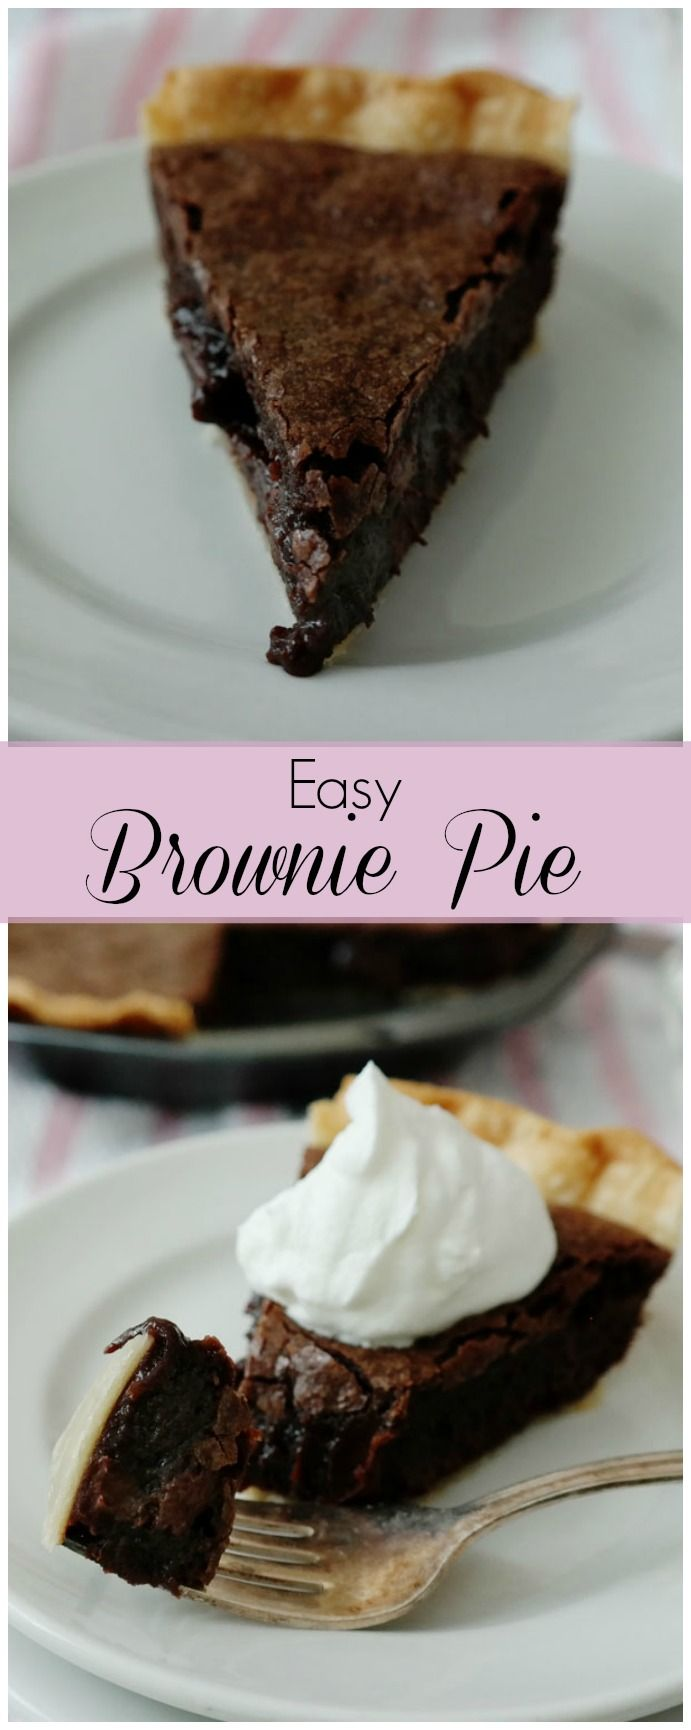 Easy Brownie Pie - Chocolate Chocolate and More!